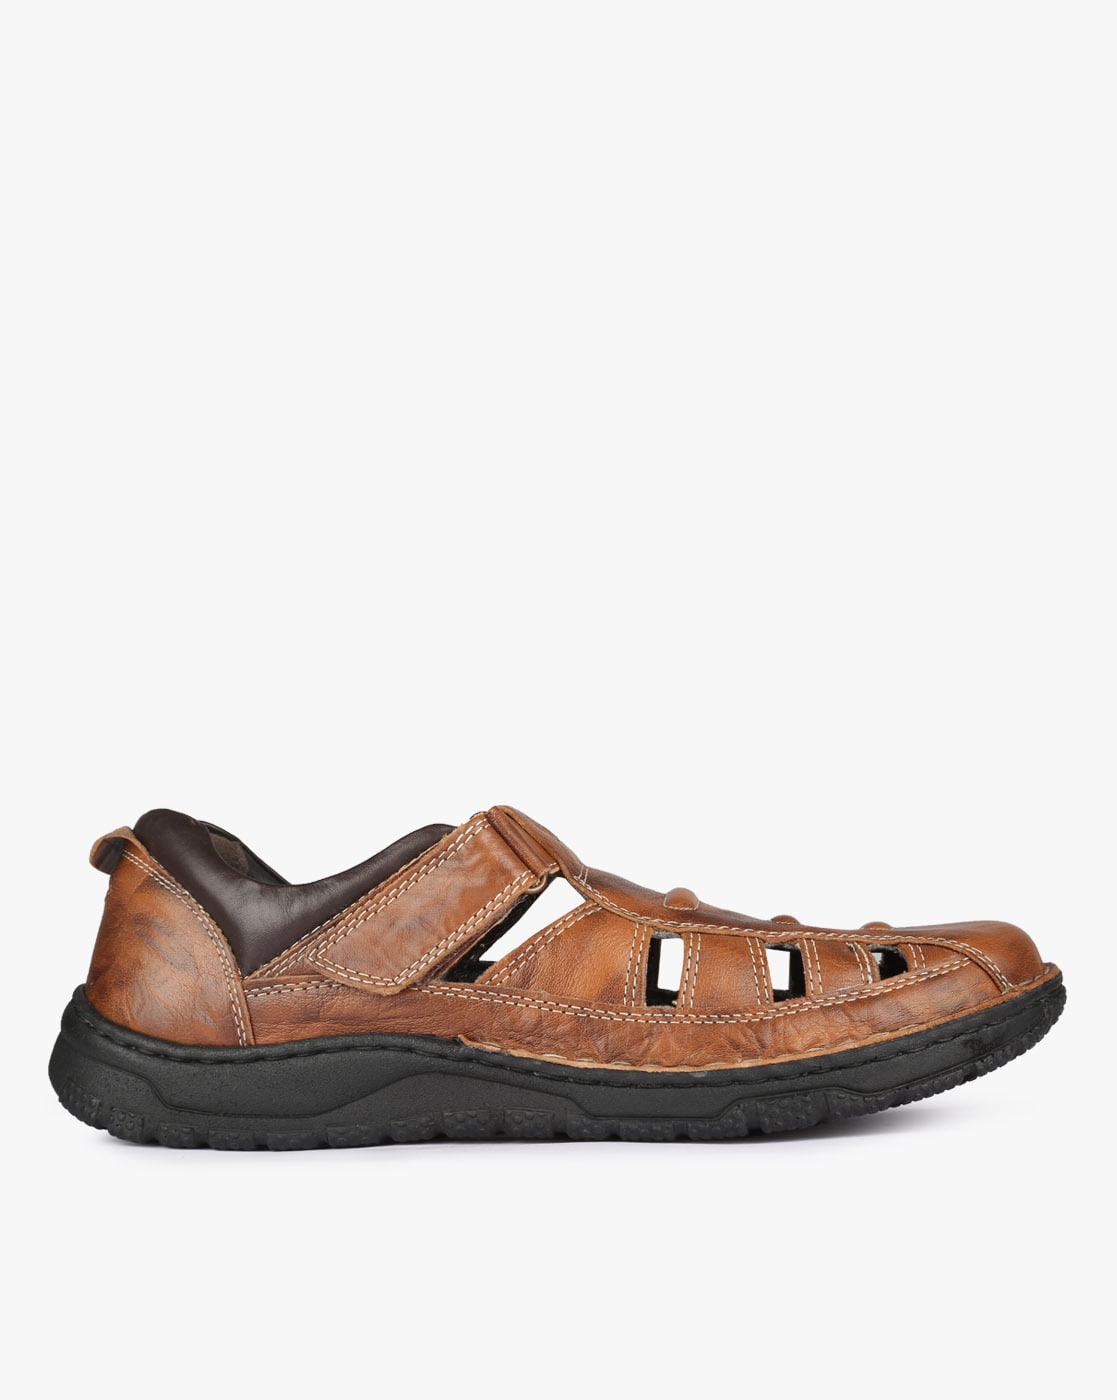 Buy Brown Casual Sandals for Men by Lee